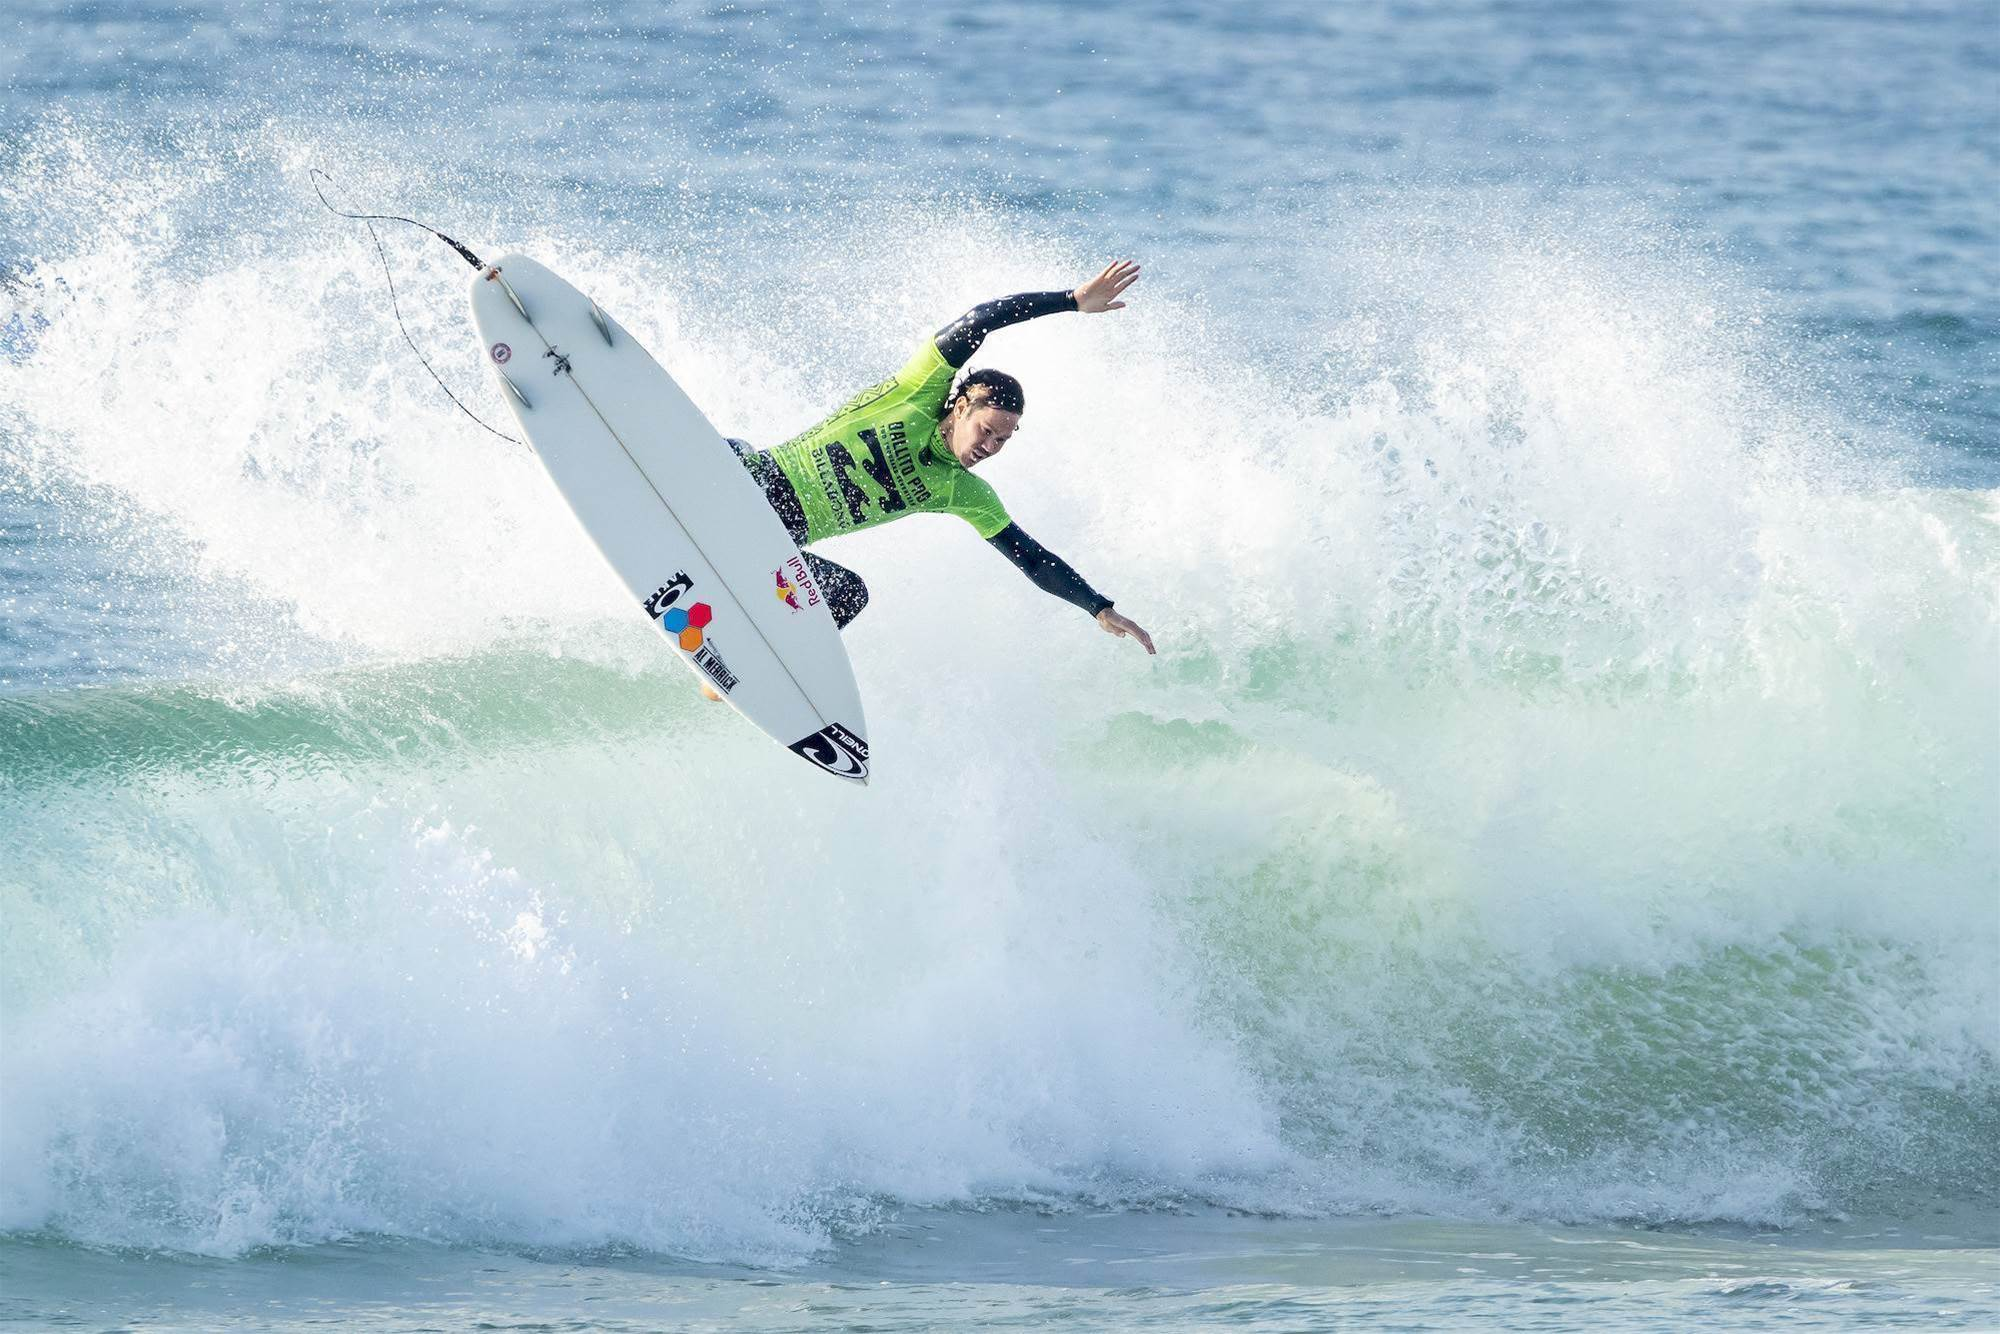 Ballito Opens Doors to the WCT